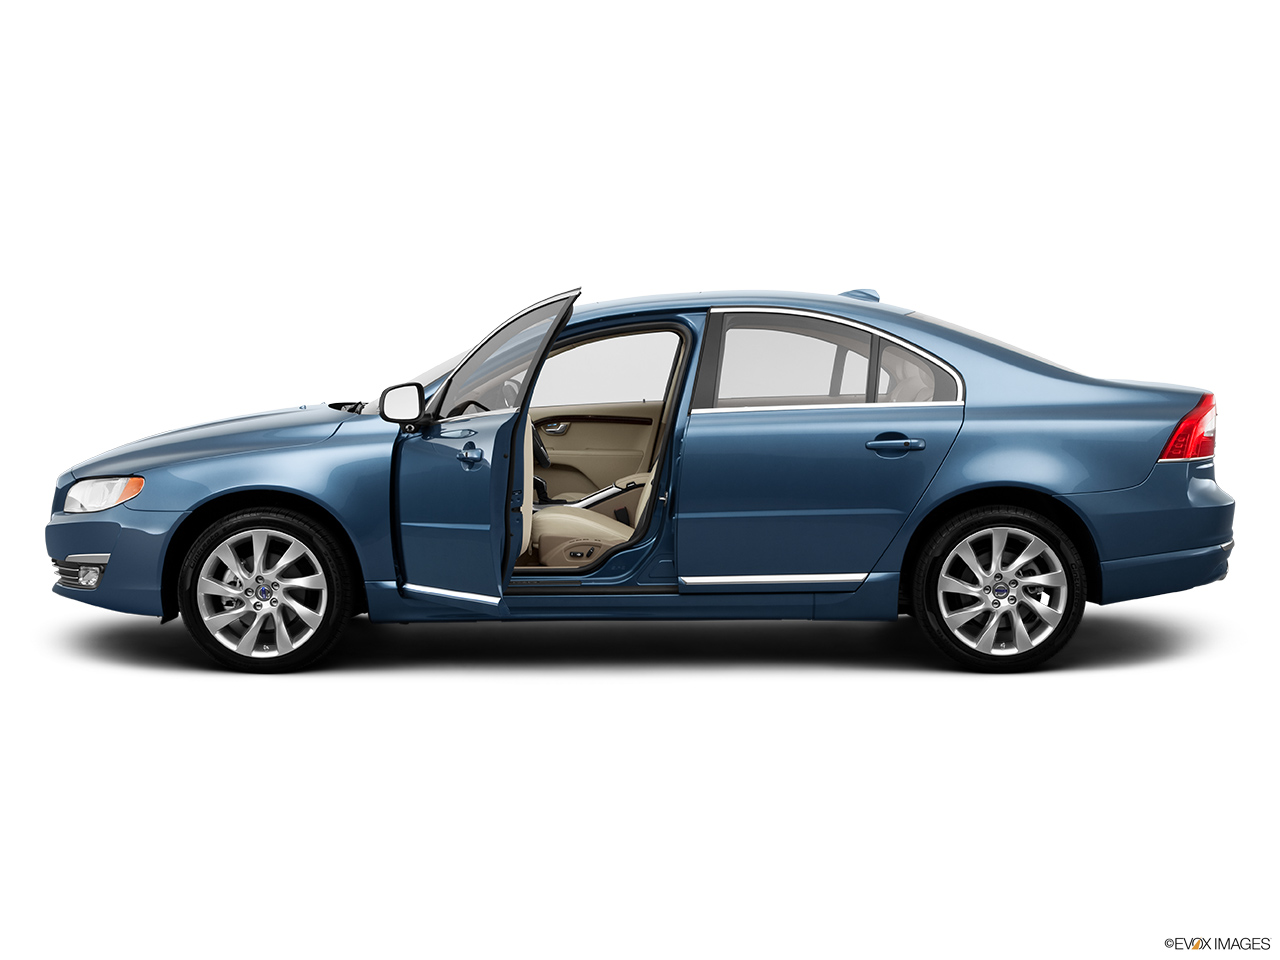 2014 Volvo S80 T6 AWD Platinum Driver's side profile with drivers side door open.